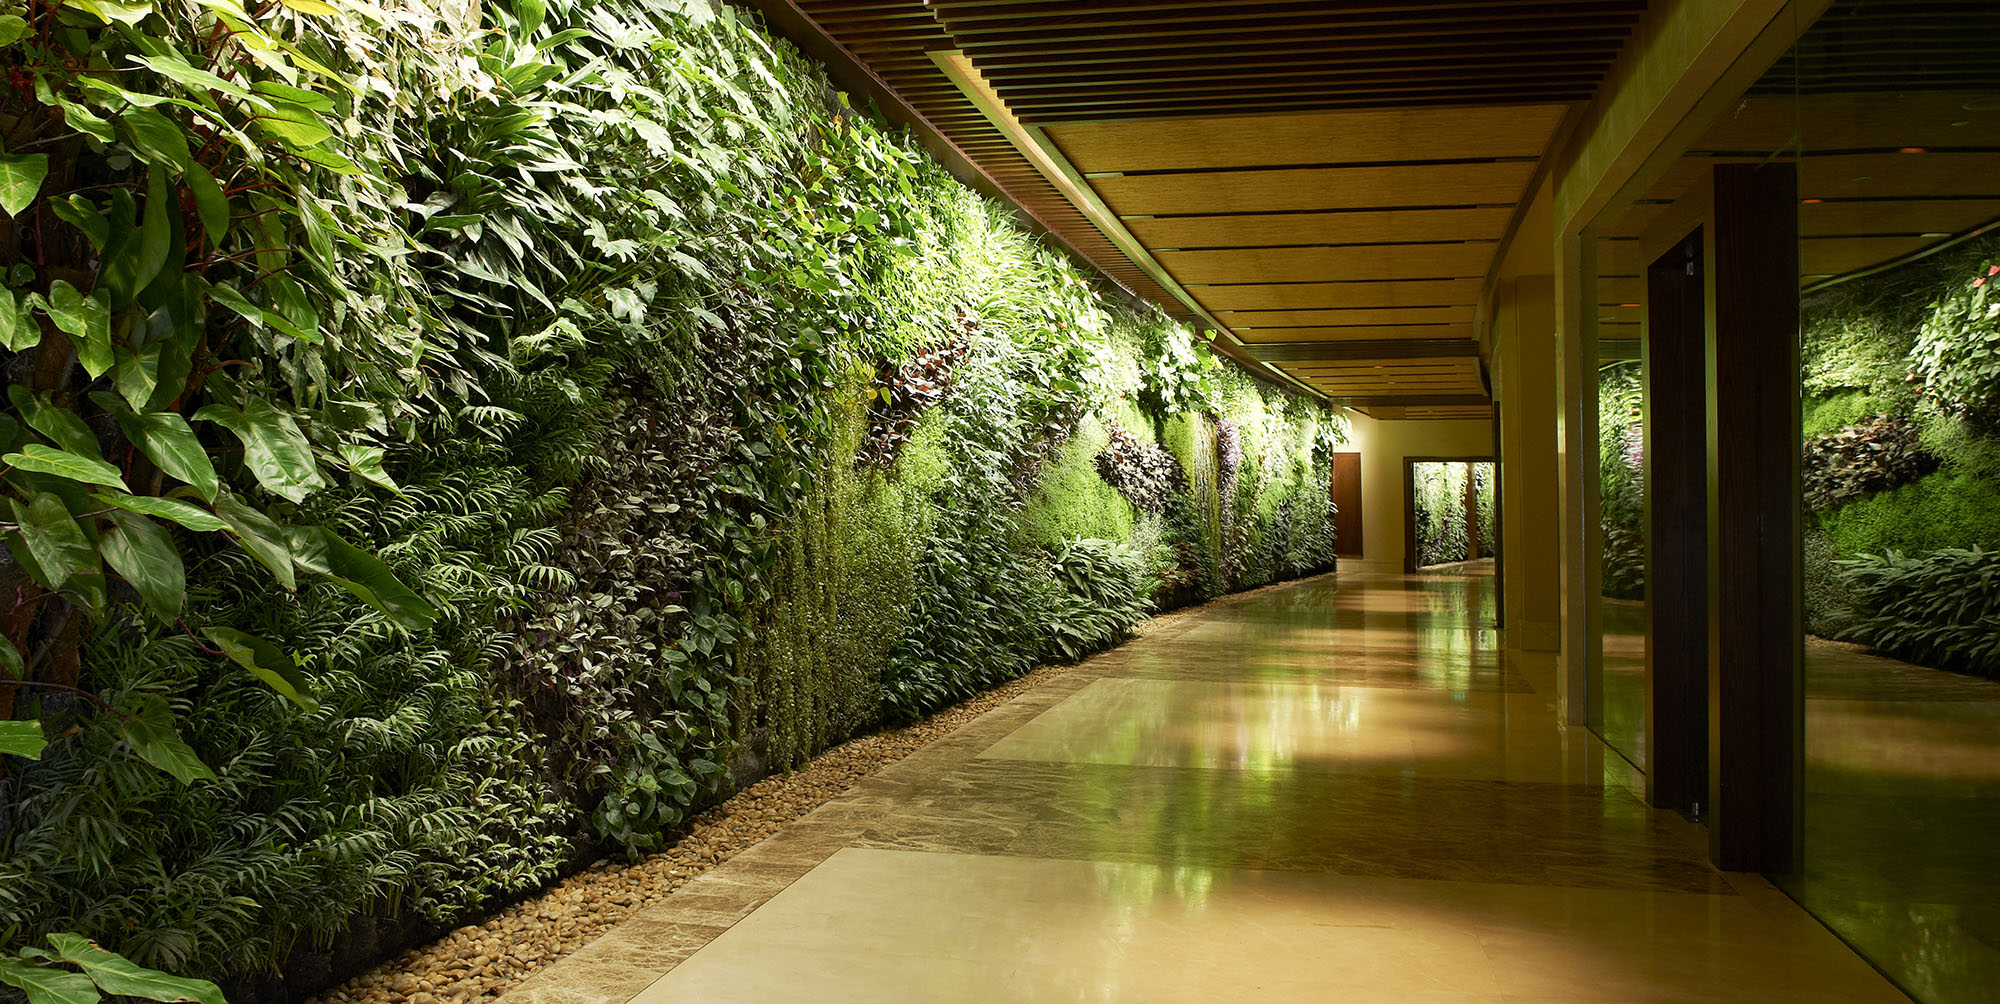 Lush living plant wall in this modern style hallway.